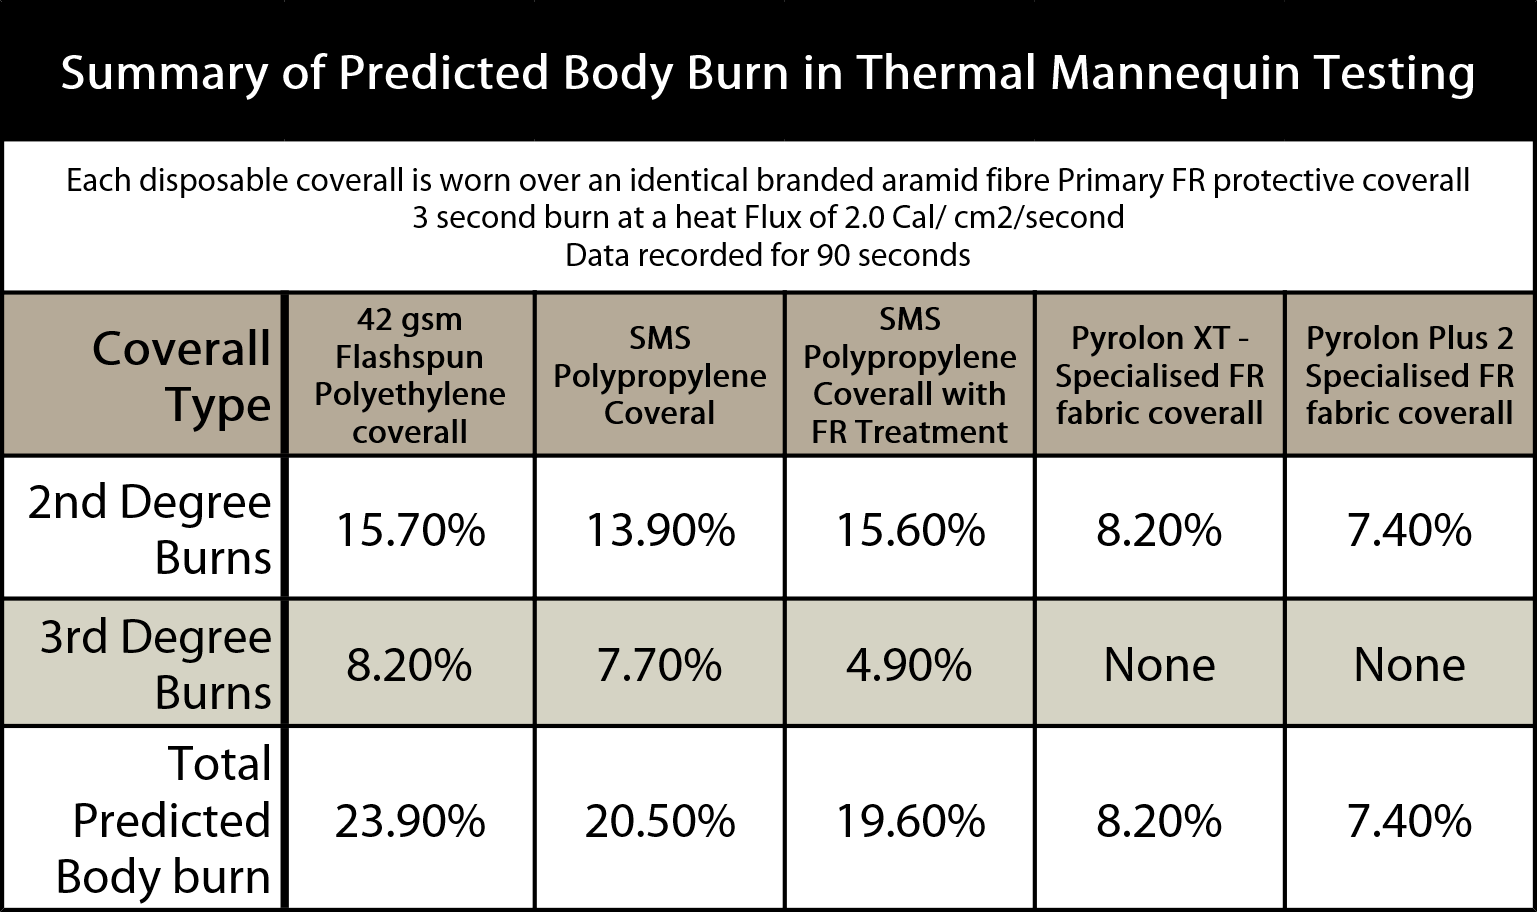 Type 5 & 6 thermal mannequin test summary - Secondary FR Disposable Coveralls and the effect of the new EN 14116 Standard